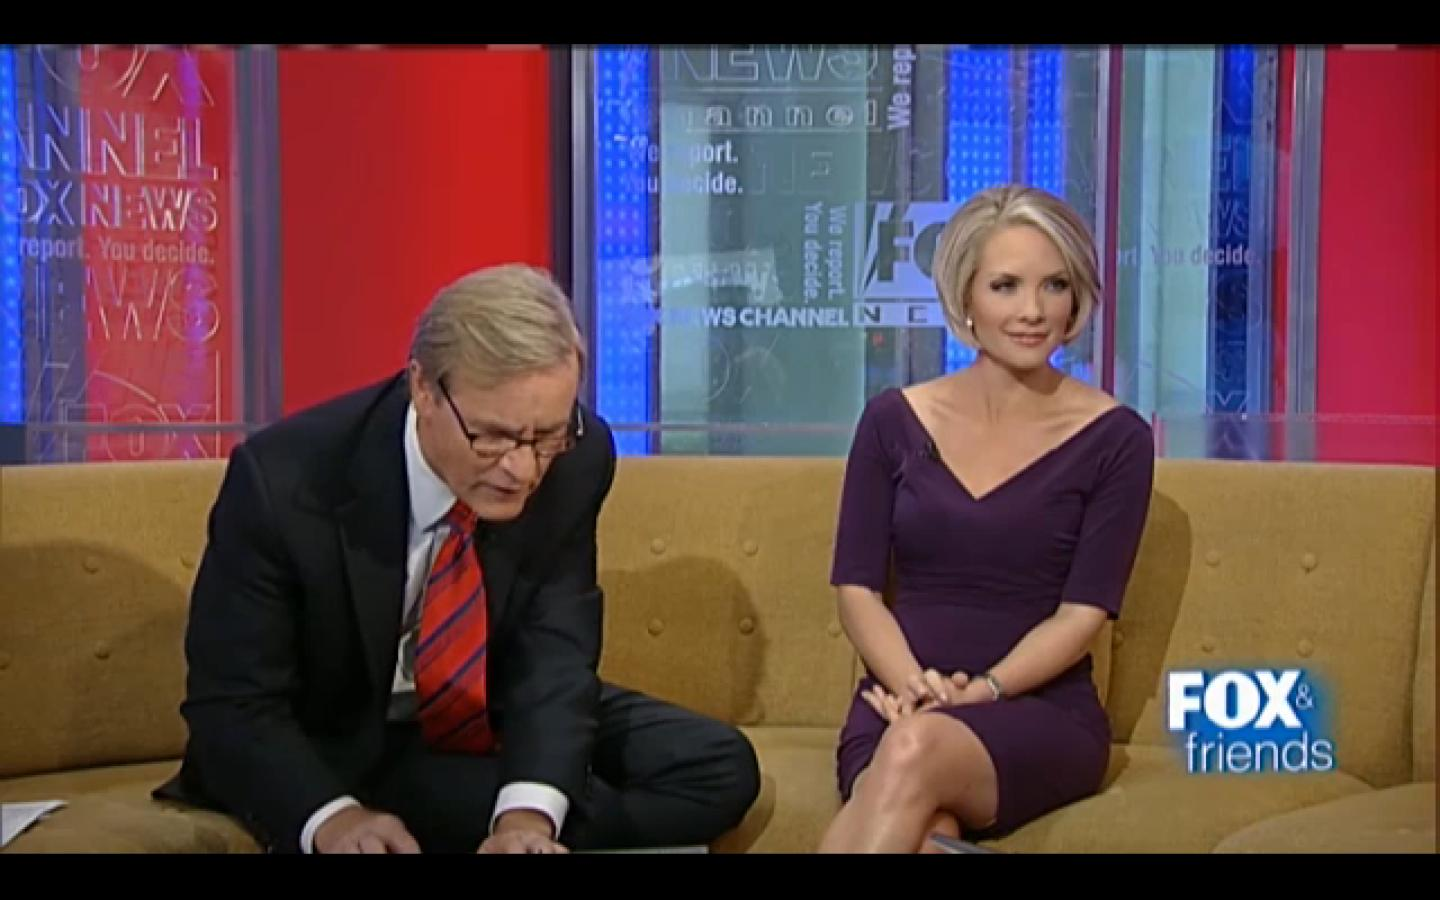 Dana Perino In A Swimsuit http://reporter101.blogspot.com/2010/11/second-week-of-nov-british-morning-show.html